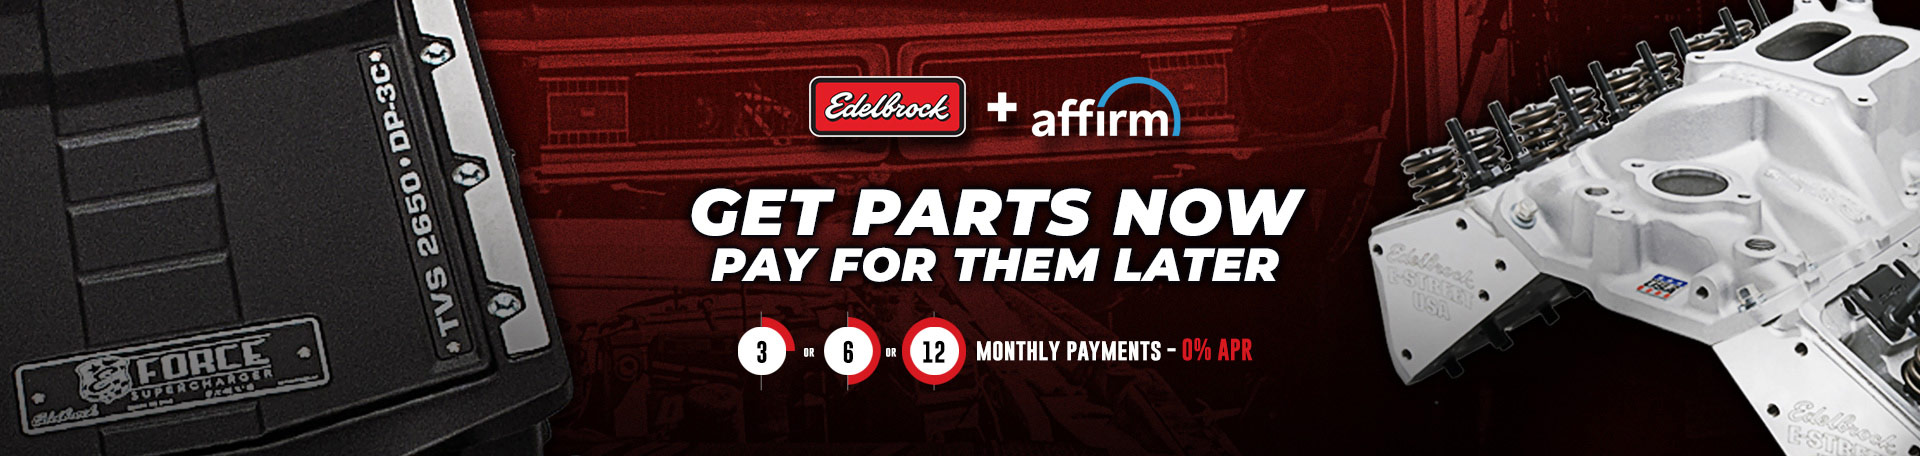 Split your purchase into 3, 6, or 12 monthly payments with 0% APR - Affirm